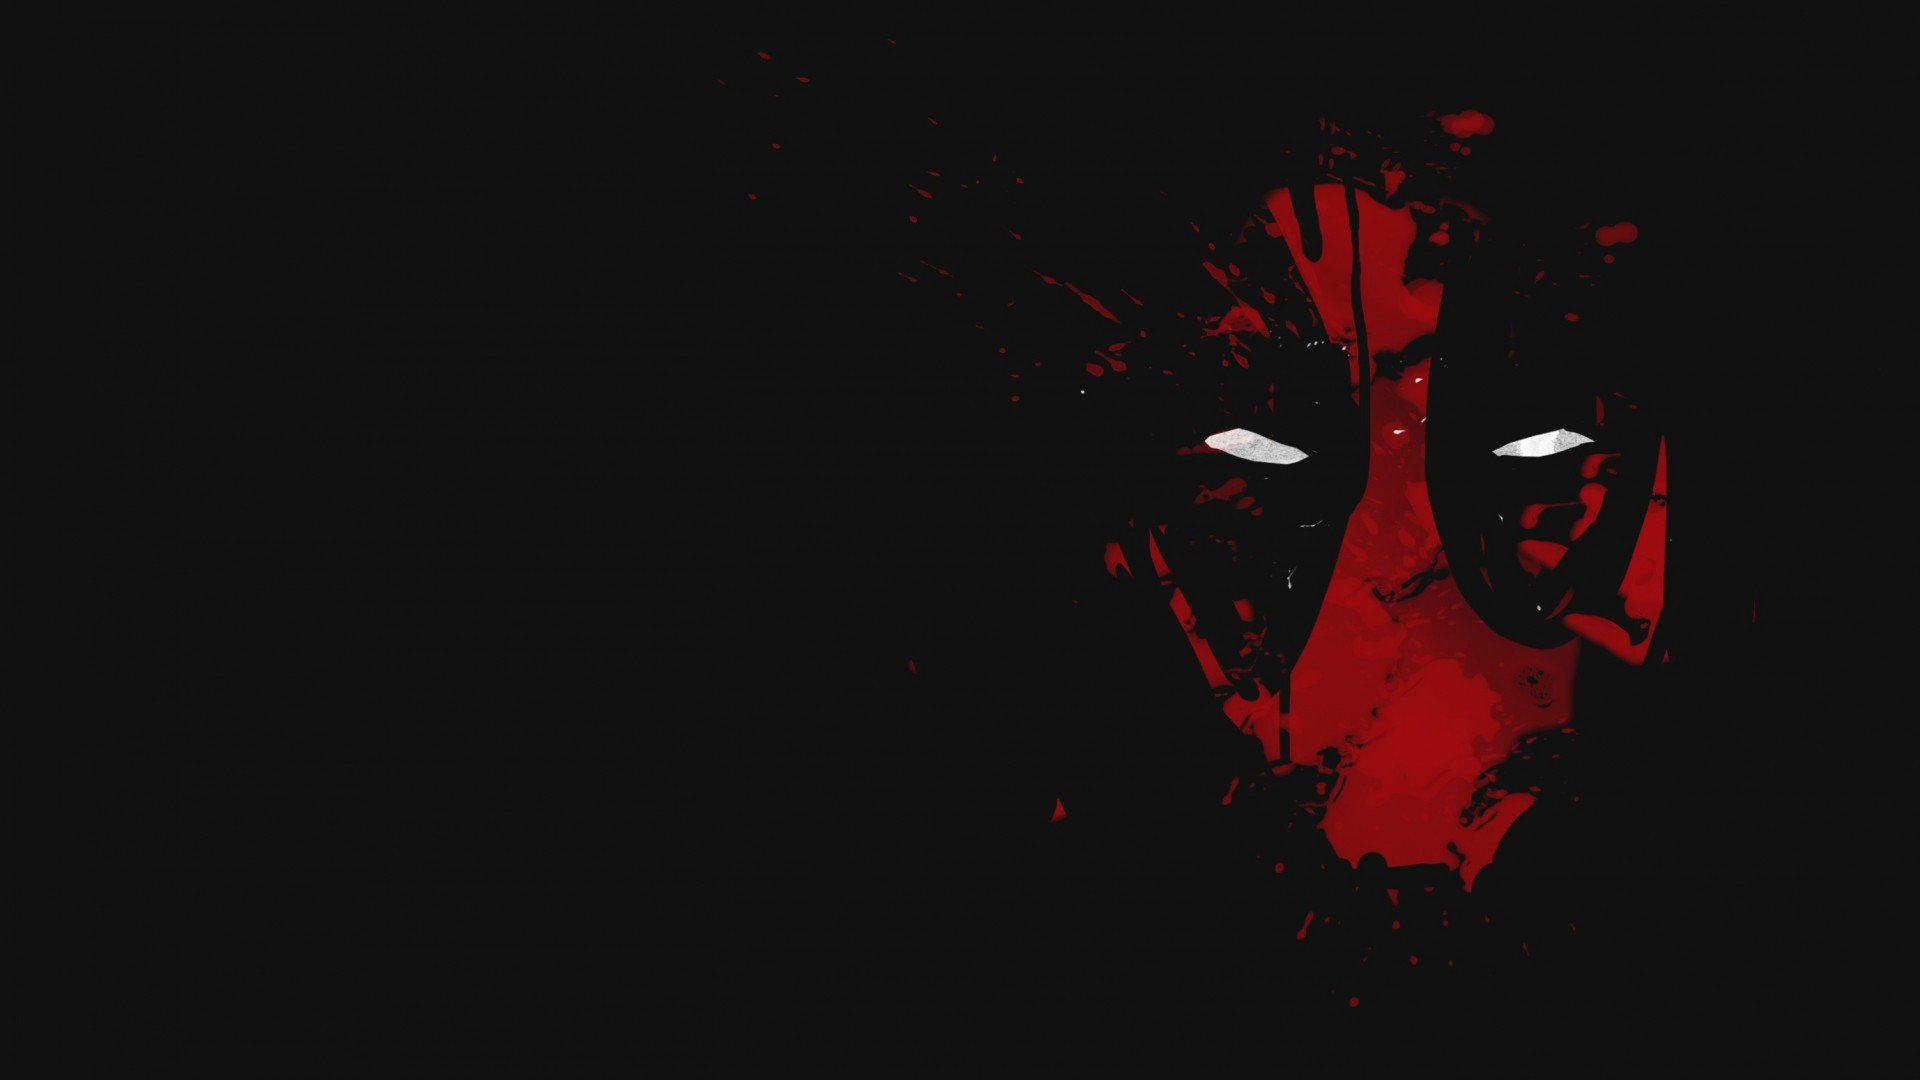 black and red hd wallpaper 1080p